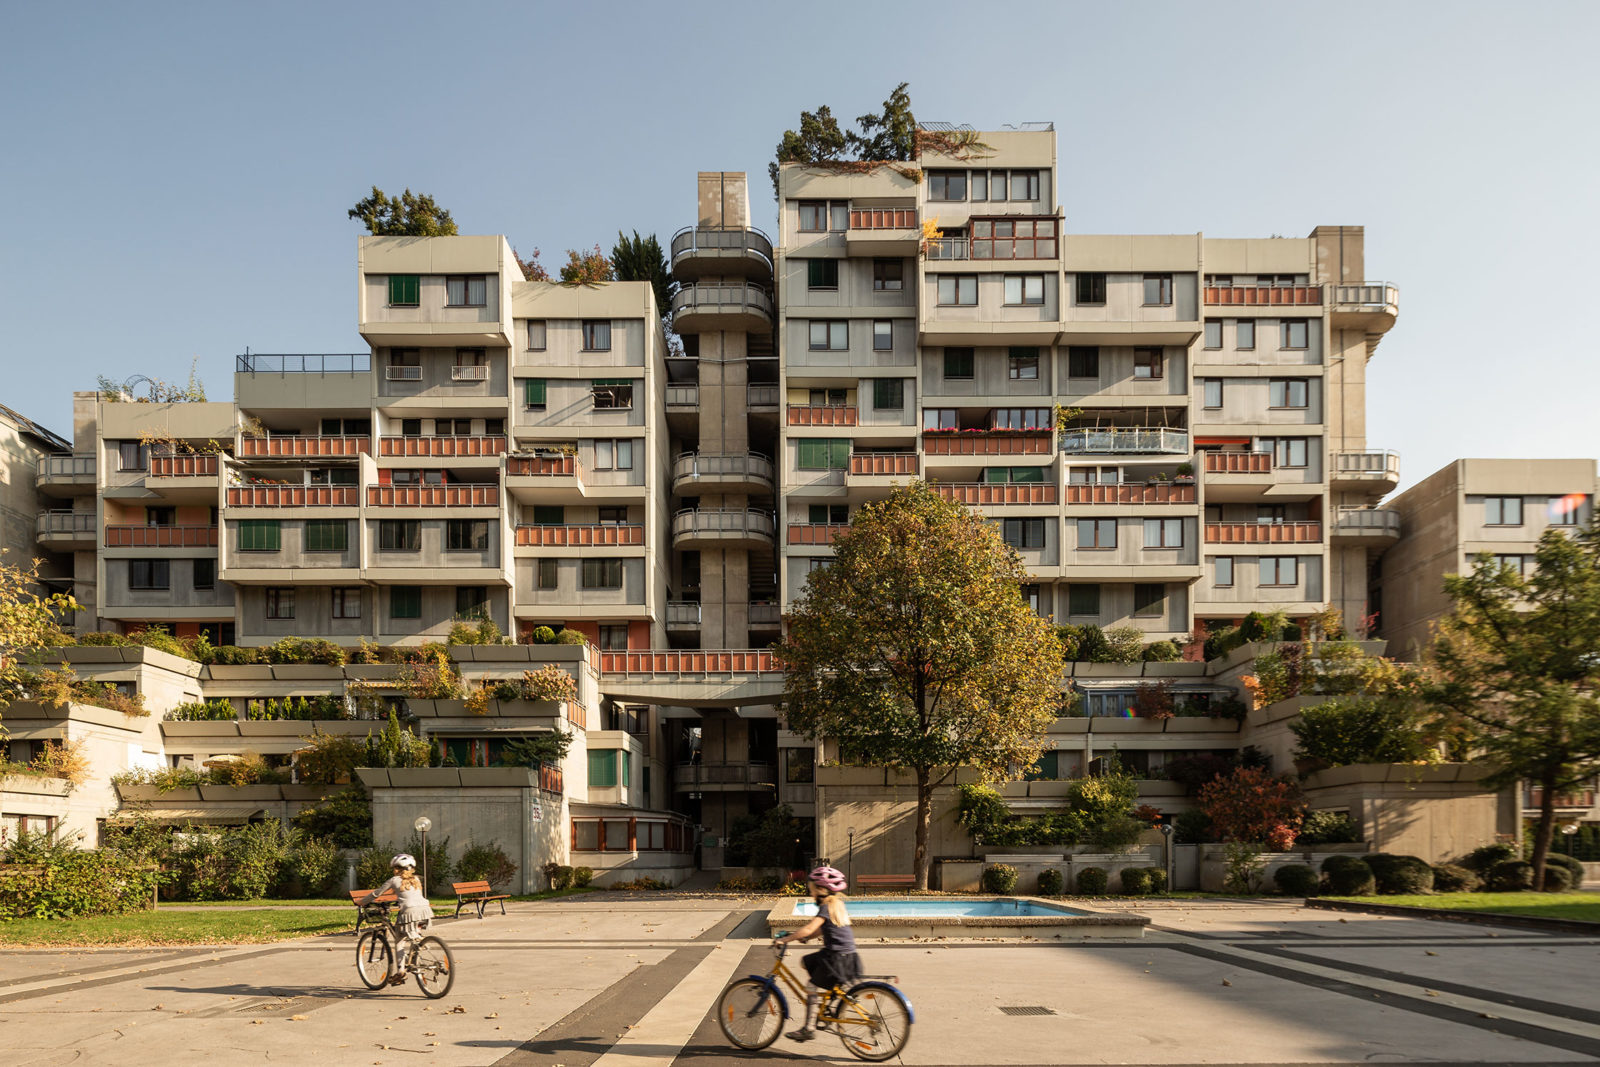 Terassenhaus, Graz – A 70s communal housing project that remains as popular as ever